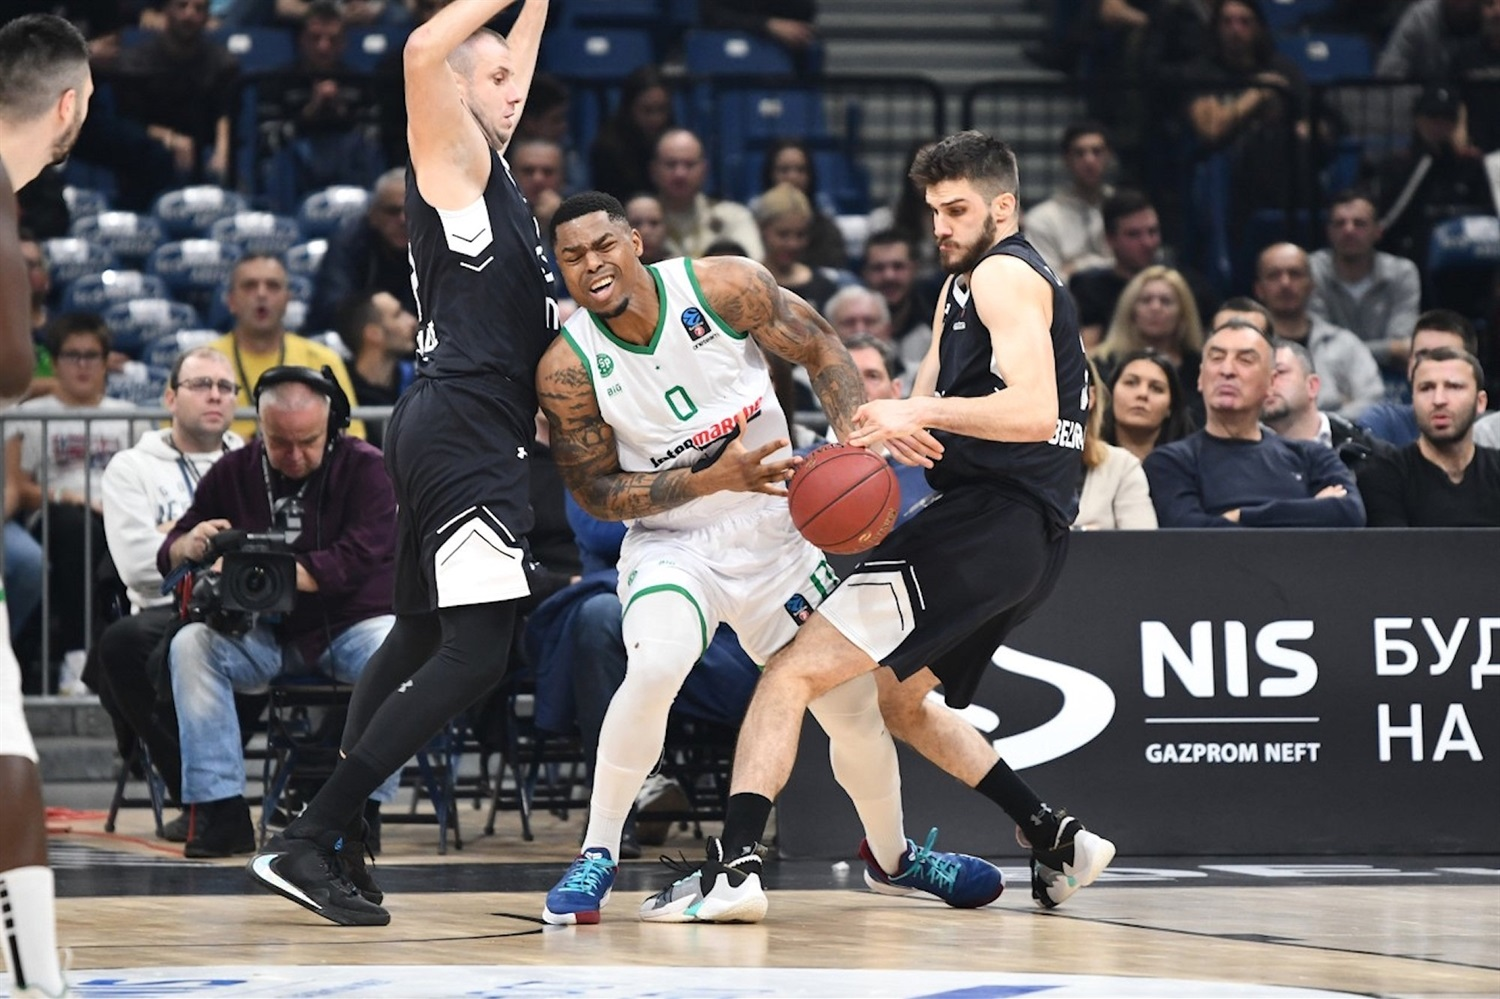 Benoit Mbala - Limoges CSP (photo Partizan) - EC19